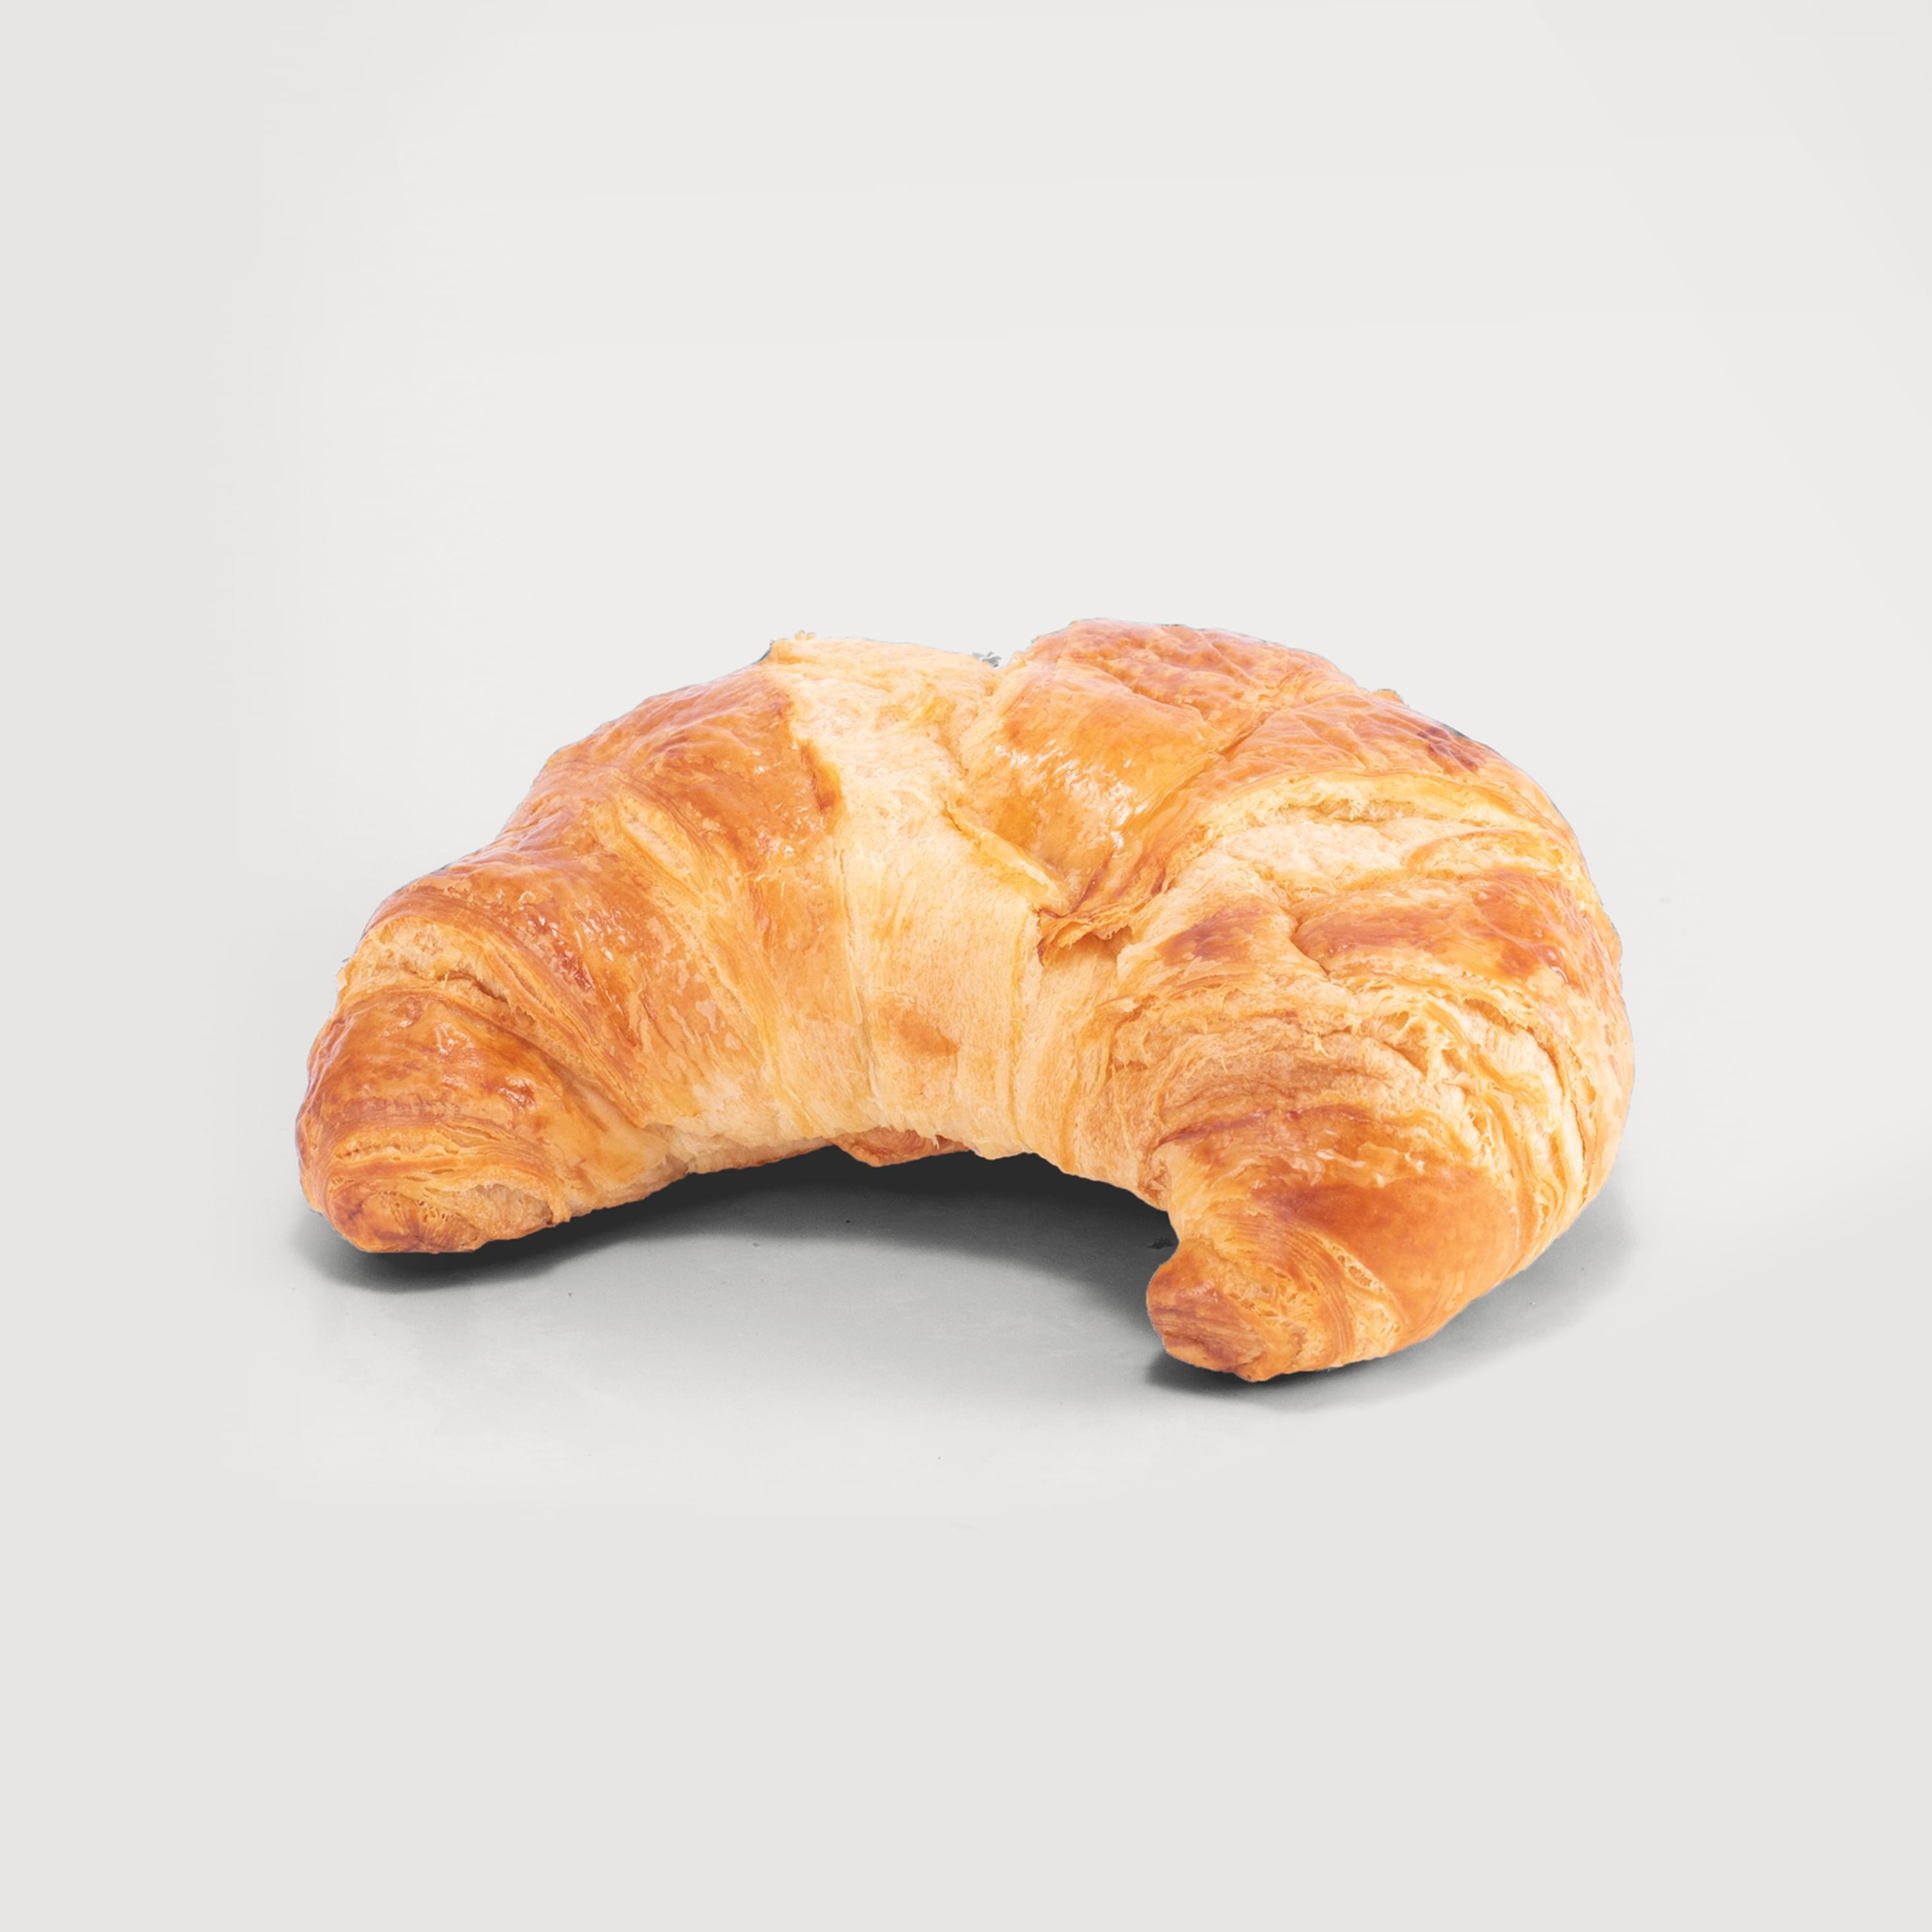 Pastry croissant thumb